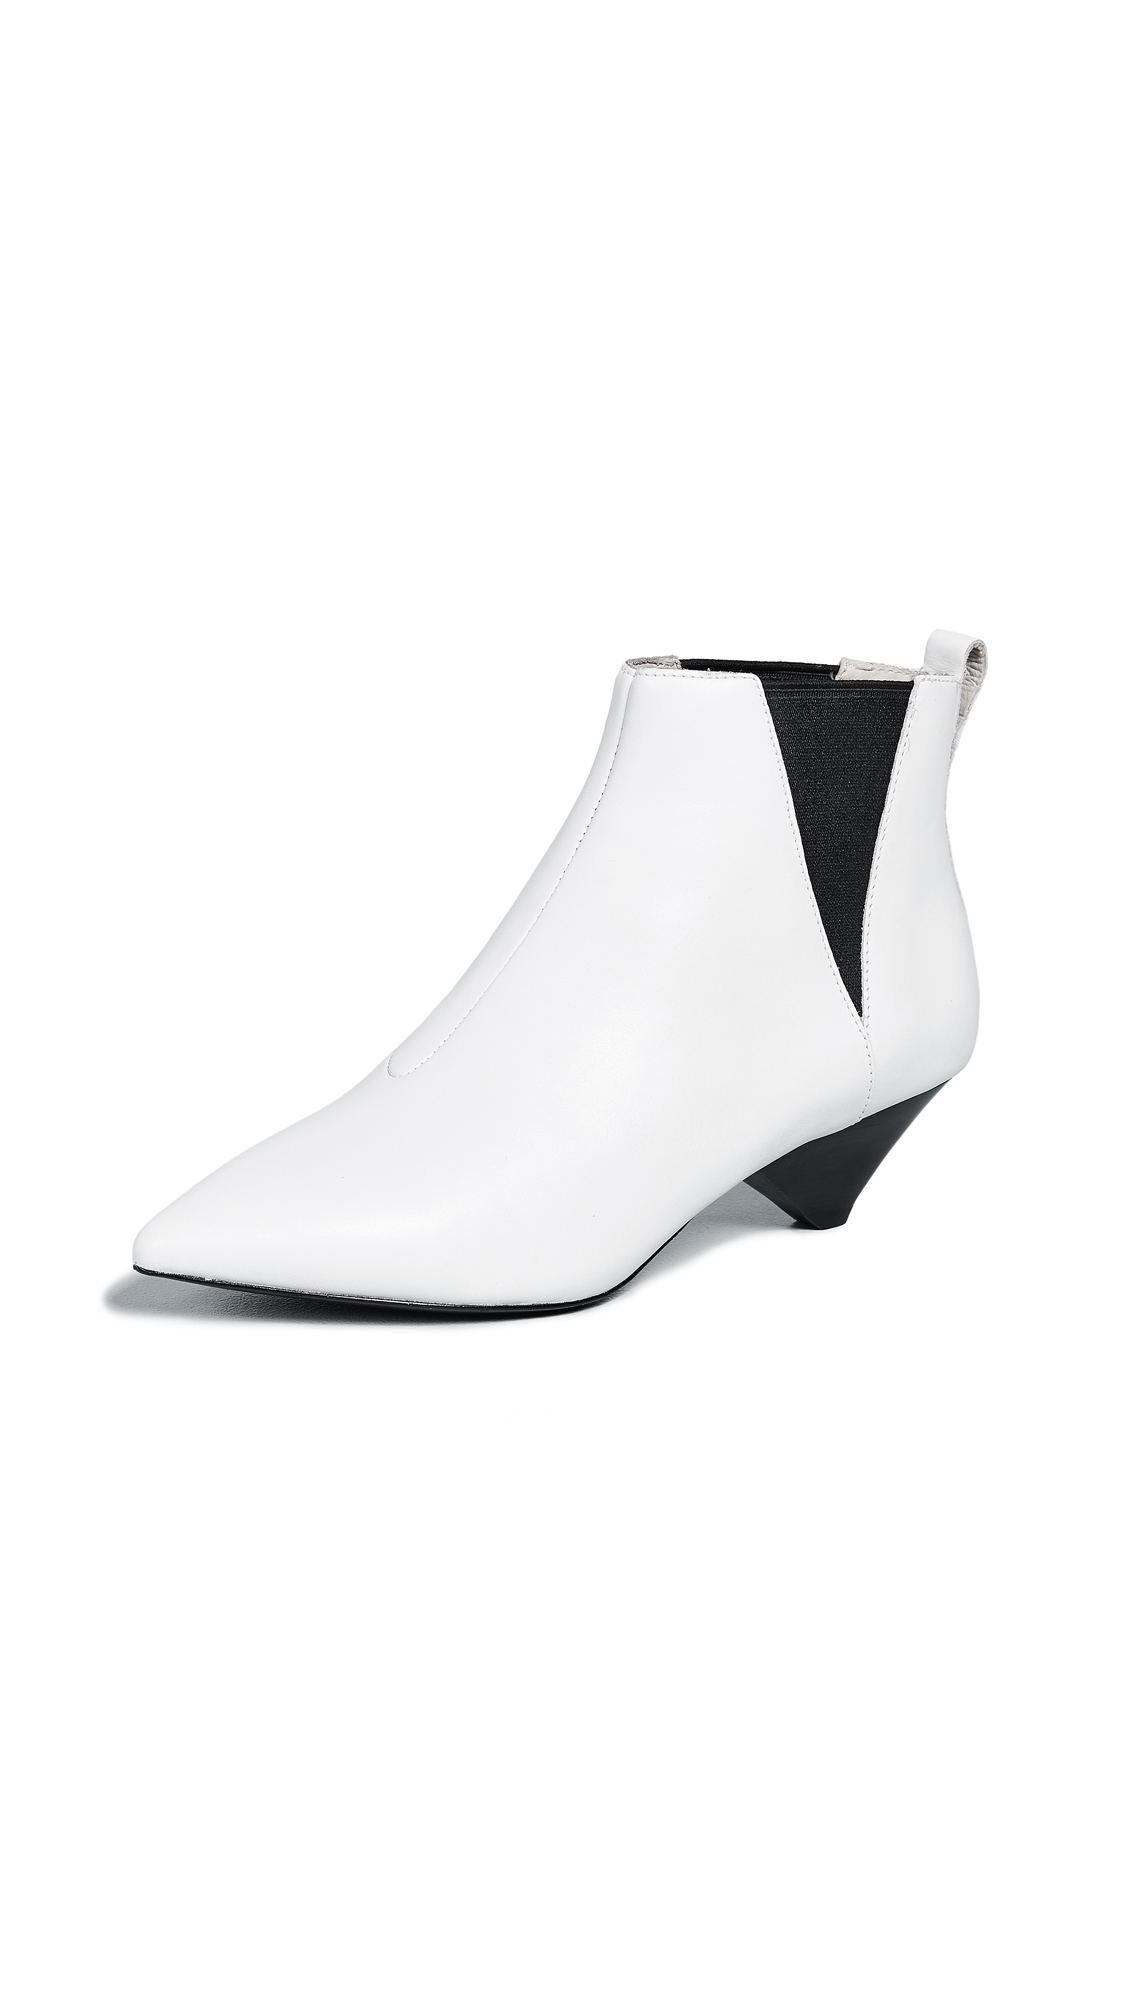 ASH Cosmos White Leather Ankle Boots